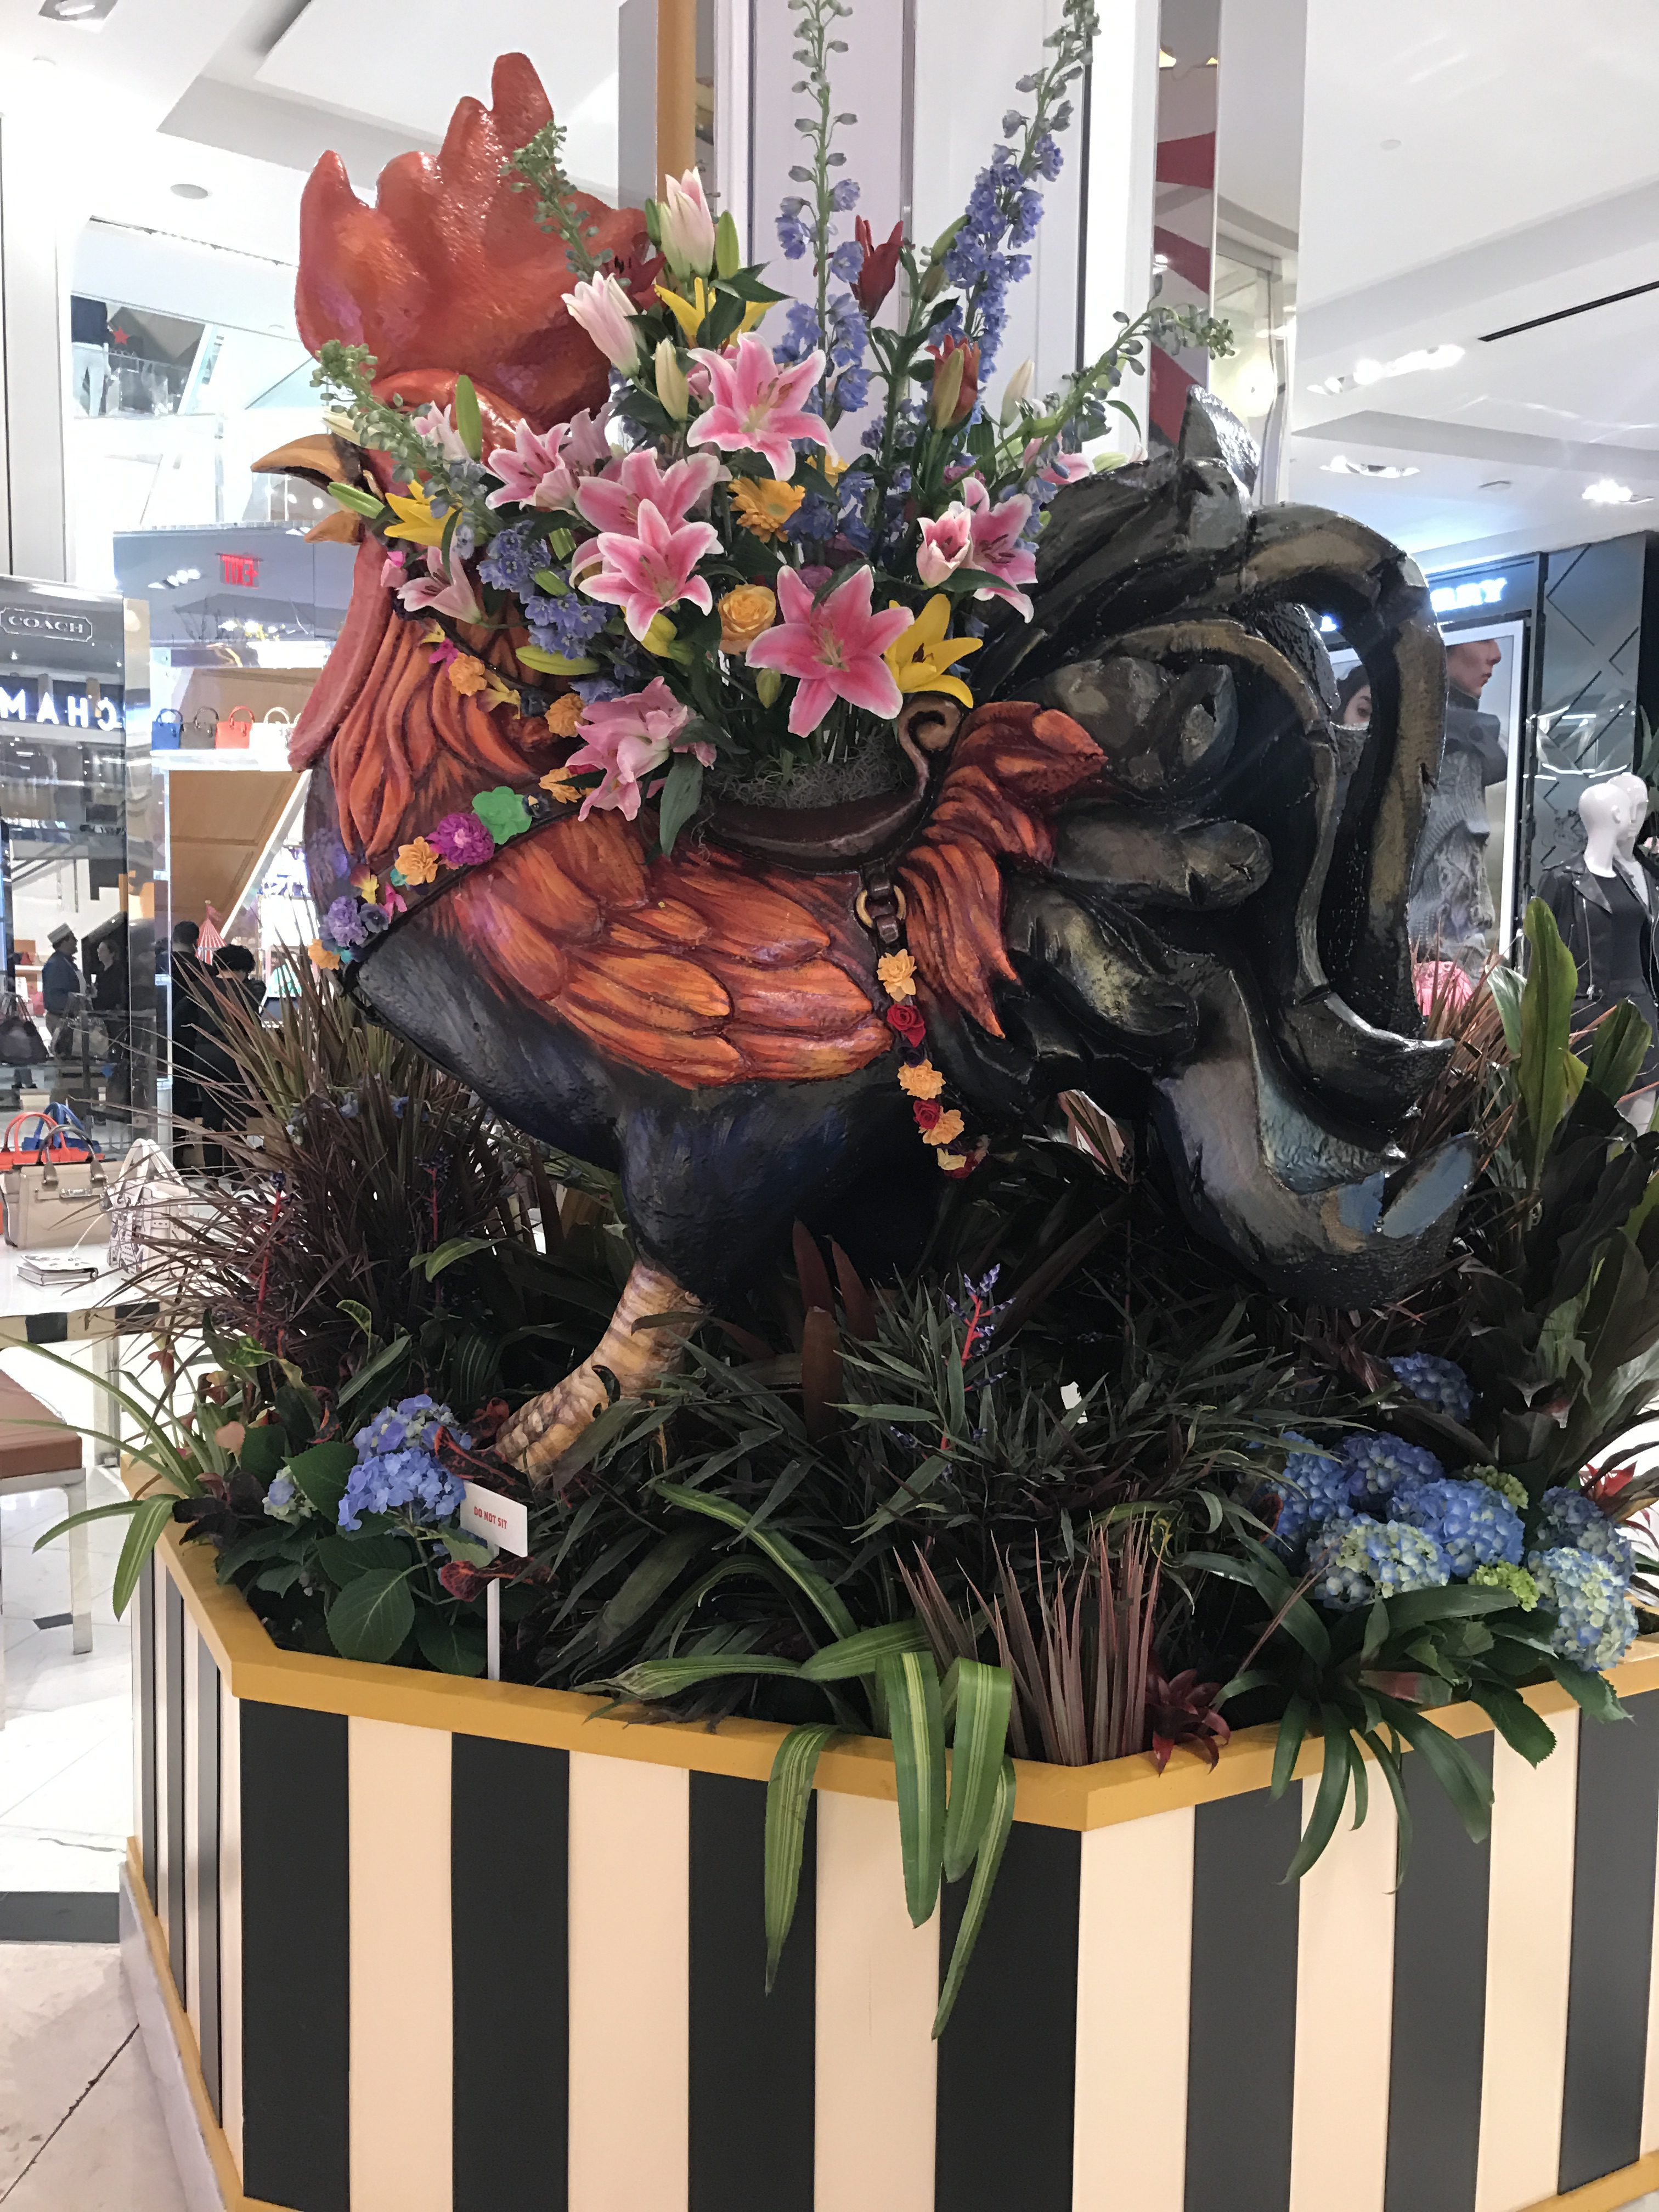 Macys Flower Show Rooster NYC Single Mom